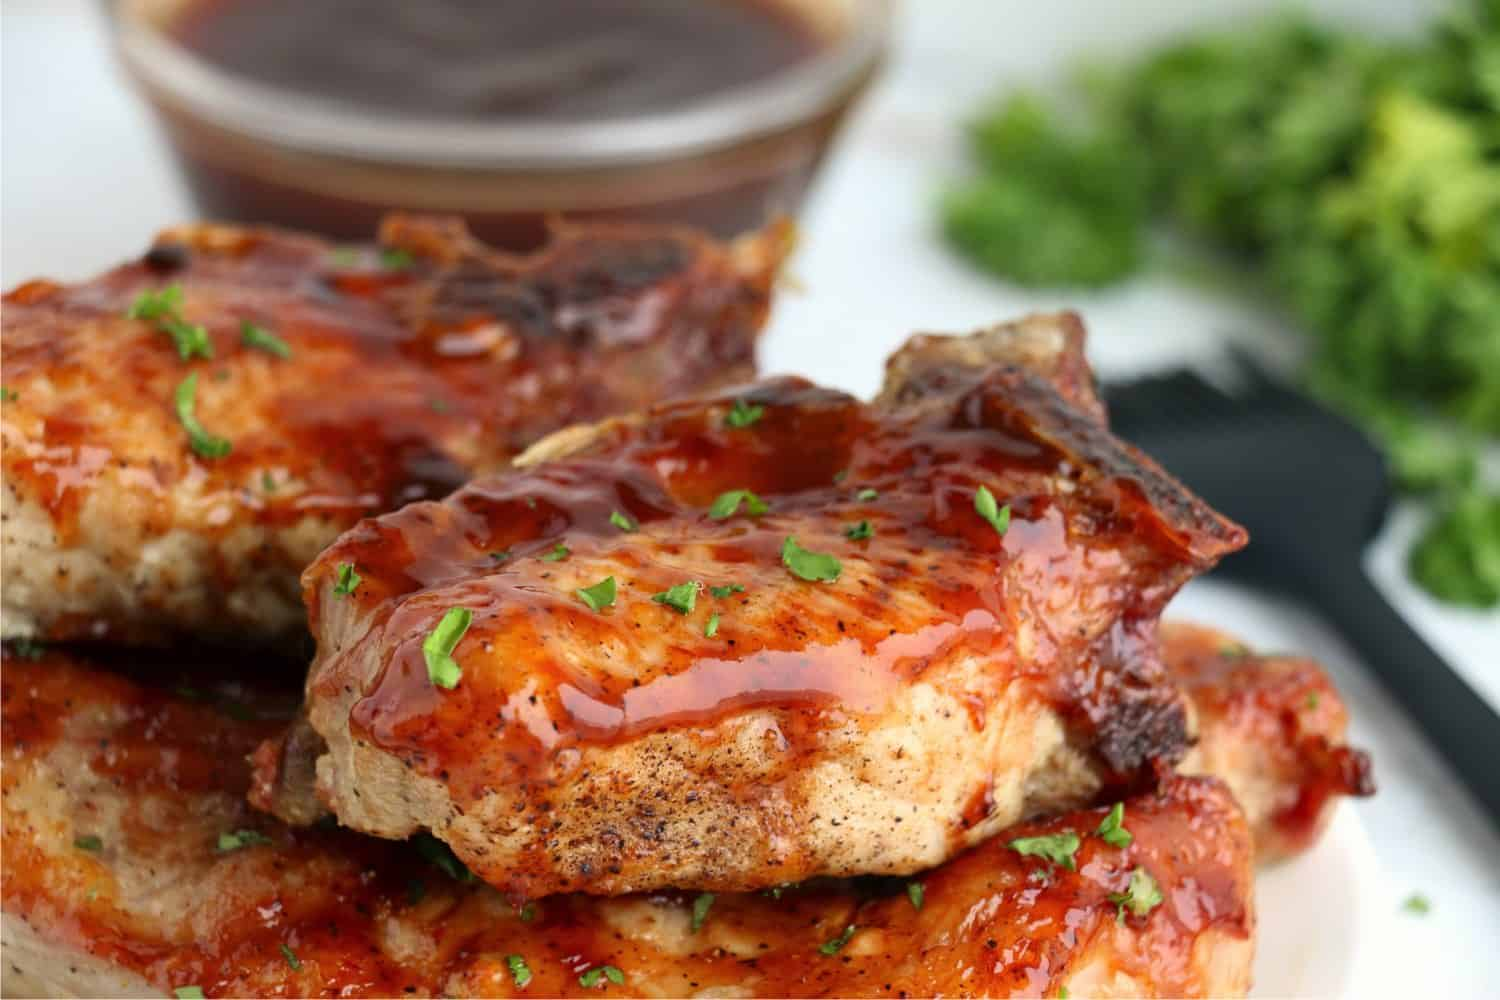 Air fryer barbecue ribs cooked to perfection and piled up ready to be served